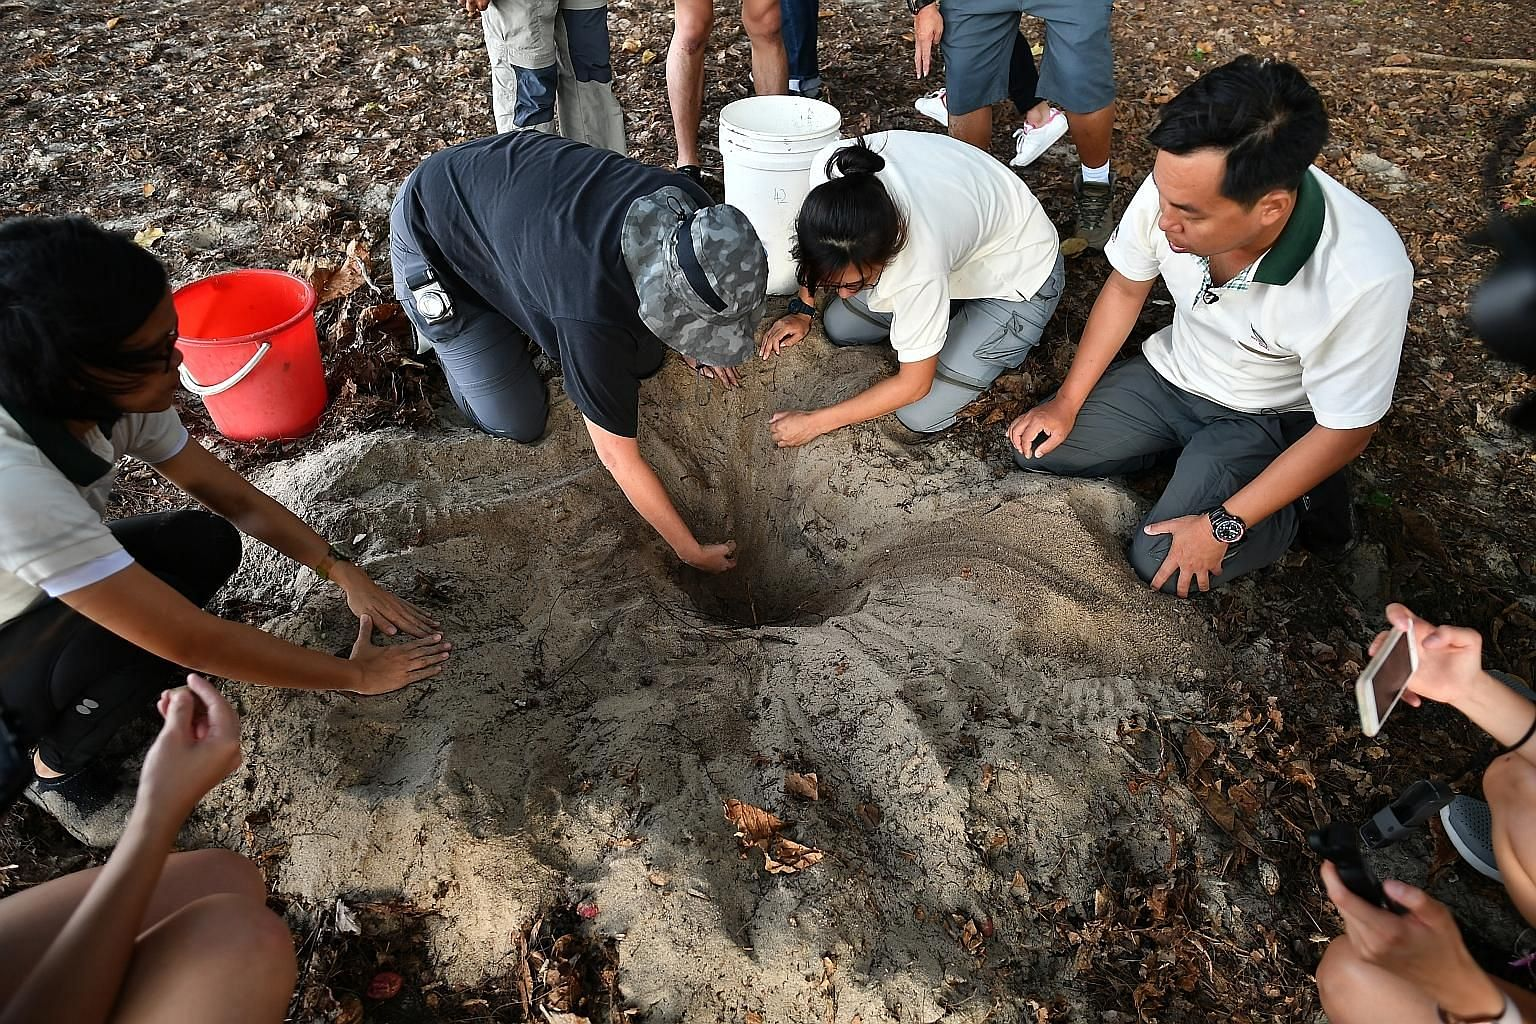 Staff and volunteers from the National Parks Board (far left) extracting hawksbill turtle eggs from a nest at East Coast Park yesterday. The eggs were carefully placed in a bucket filled with moist sand (left), to be transported to the turtle hatcher